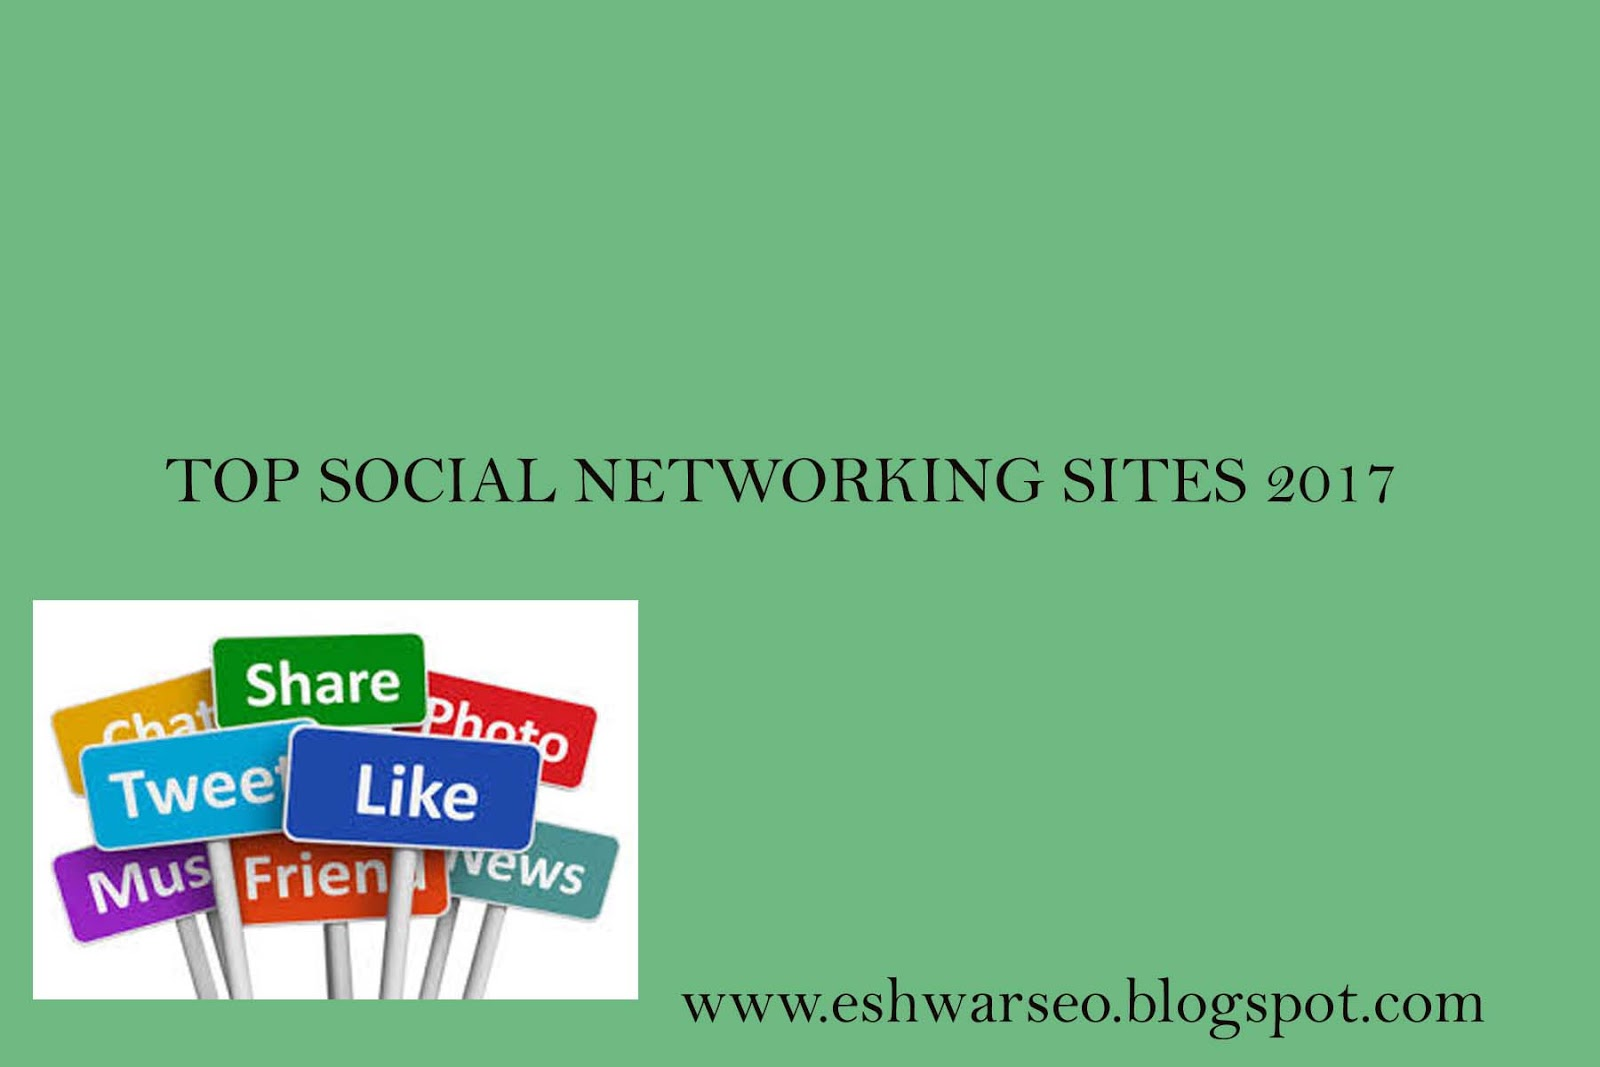 Top dating social networking sites